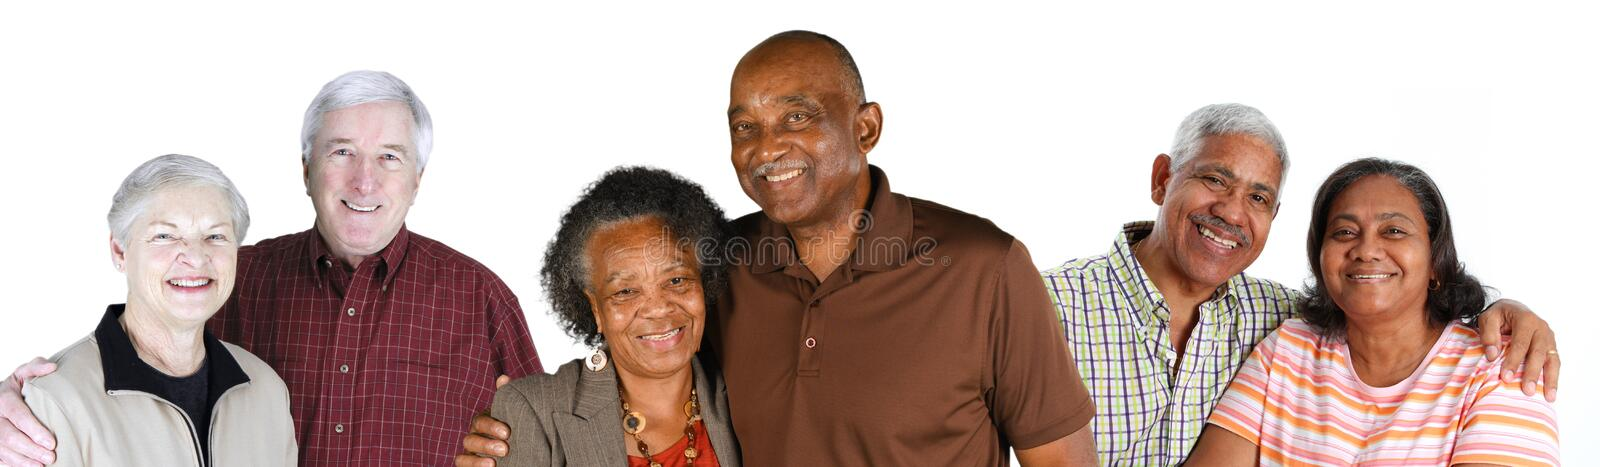 Download Group of Elderly Couples stock image. Image of grandmother - 77568265